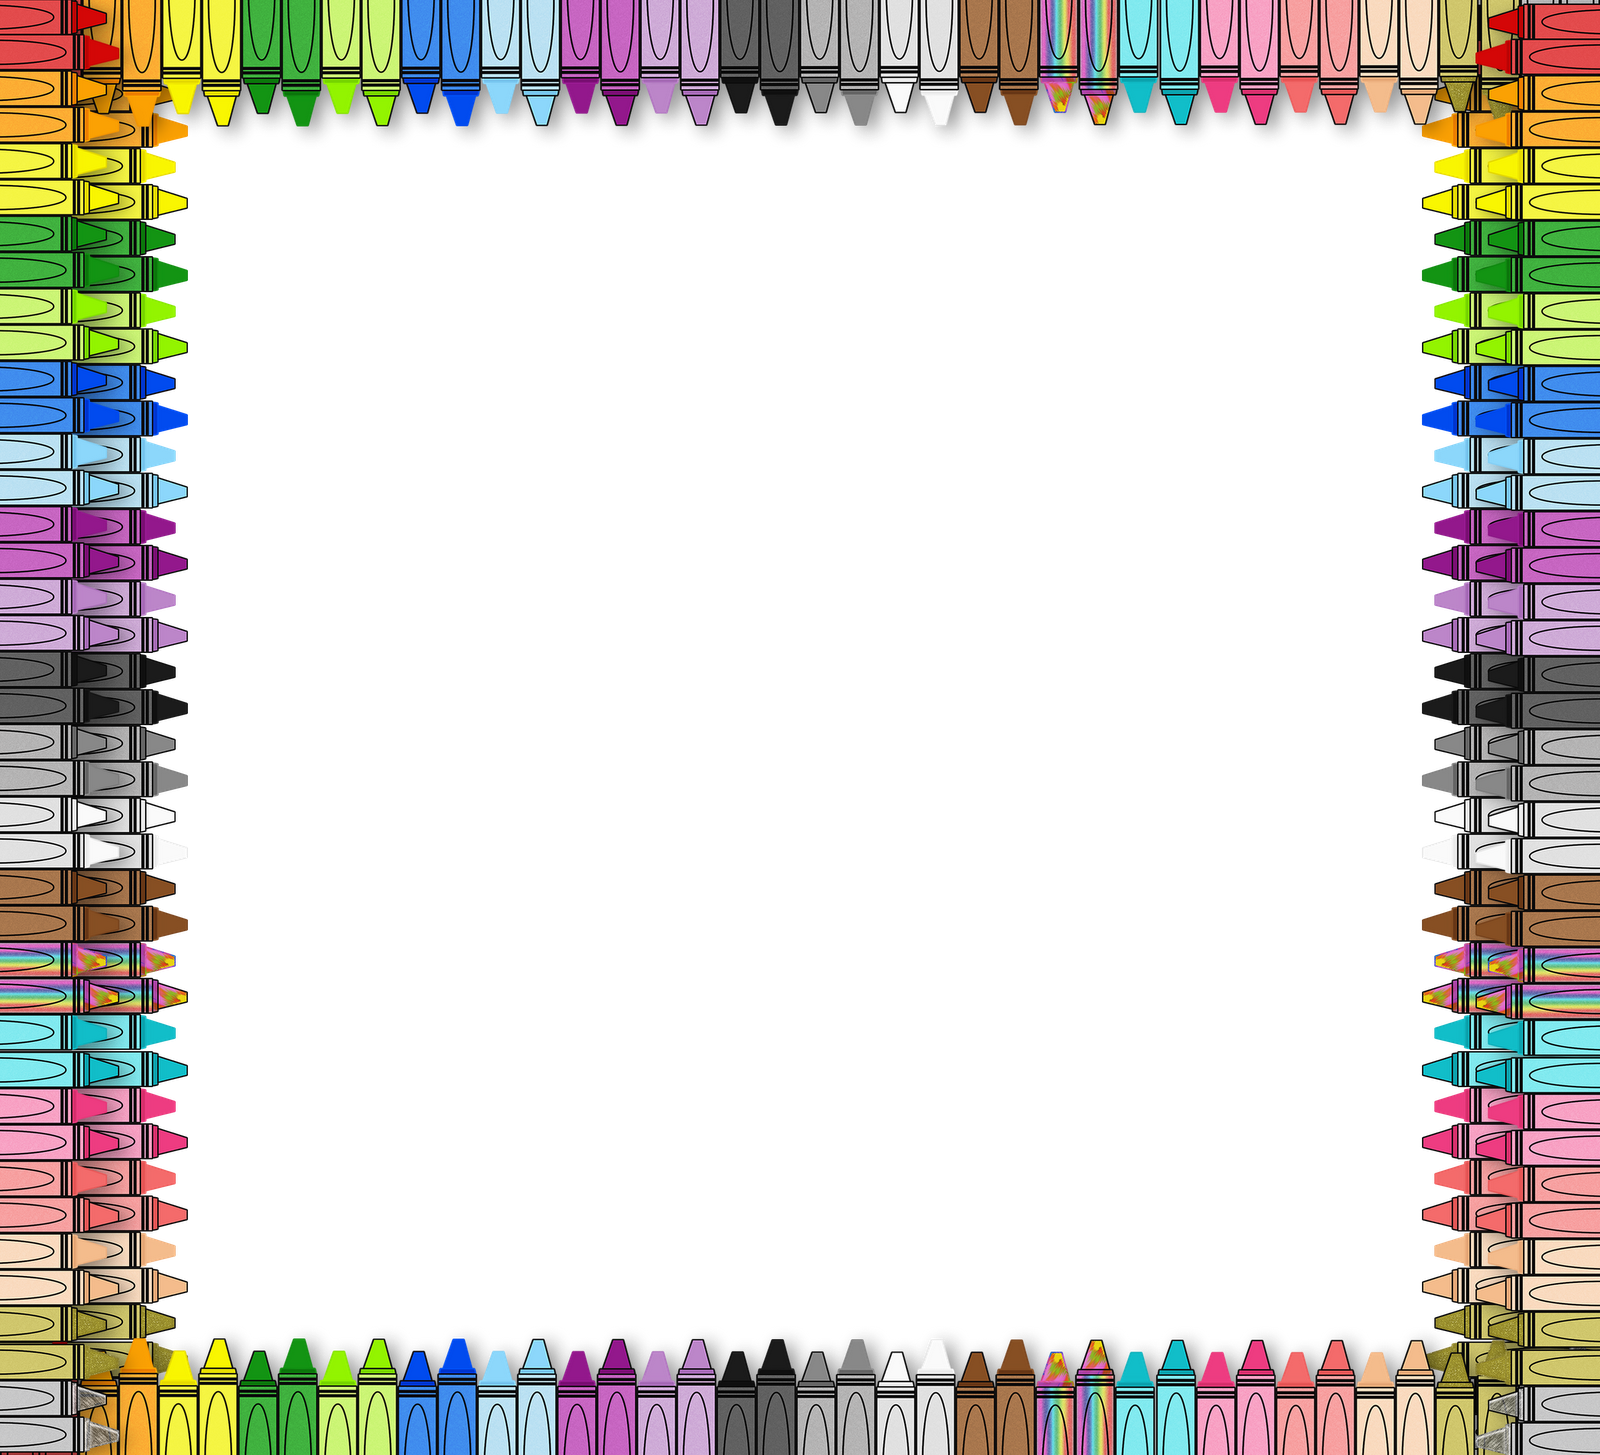 Crayon clipart boarder From ready set StaffTagsPaintings 3am